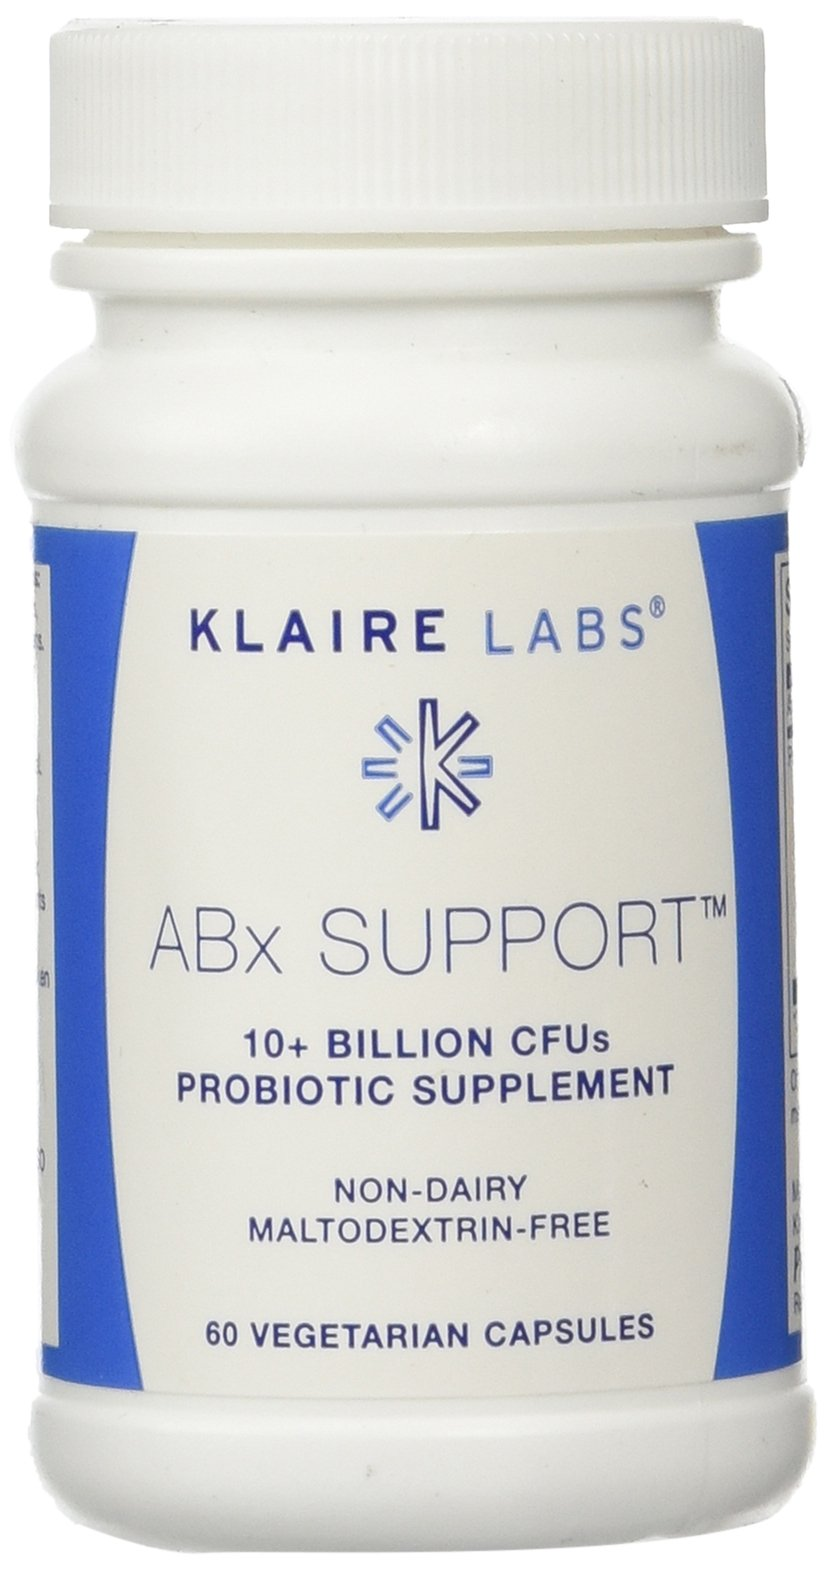 Klaire Labs ABx Support, 60 Vegetarian Capsules